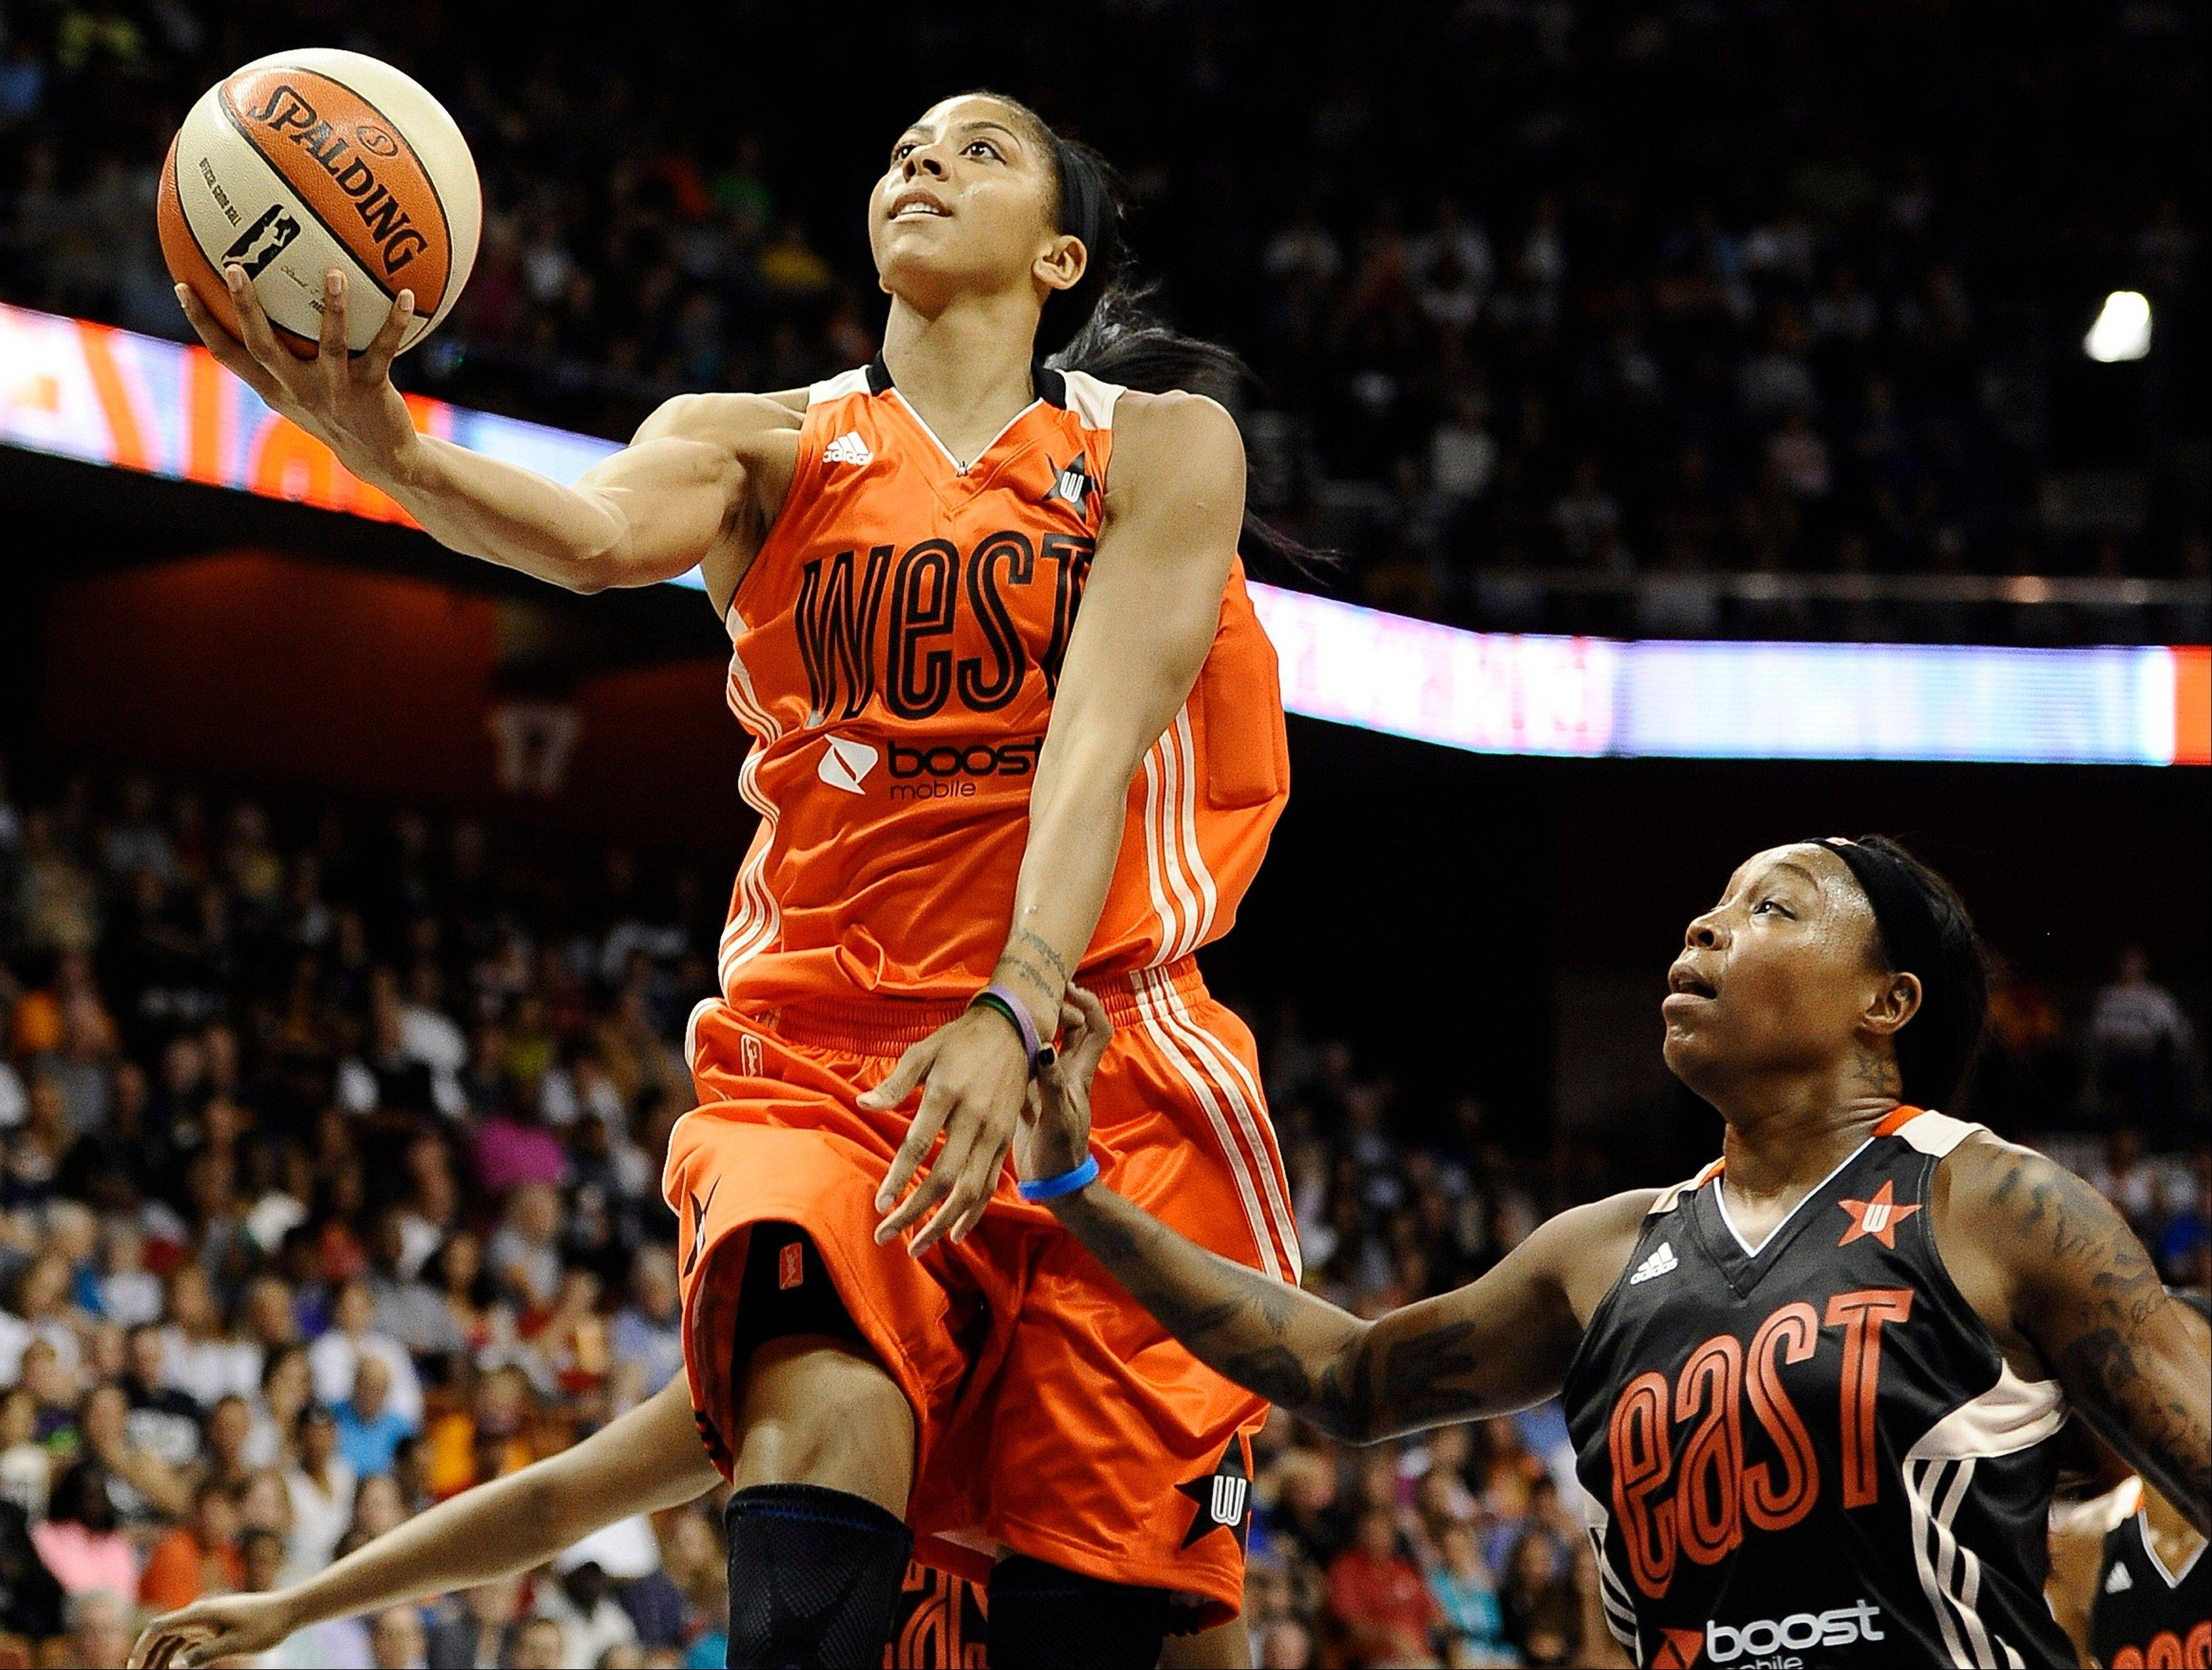 West's Candace Parker, of the Los Angeles Sparks, drives to the basket while guarded by East's Cappie Pondexter, of the New York Liberty, during the first half of the WNBA All-Star basketball game in Uncasville, Conn., Saturday, July 27, 2013.